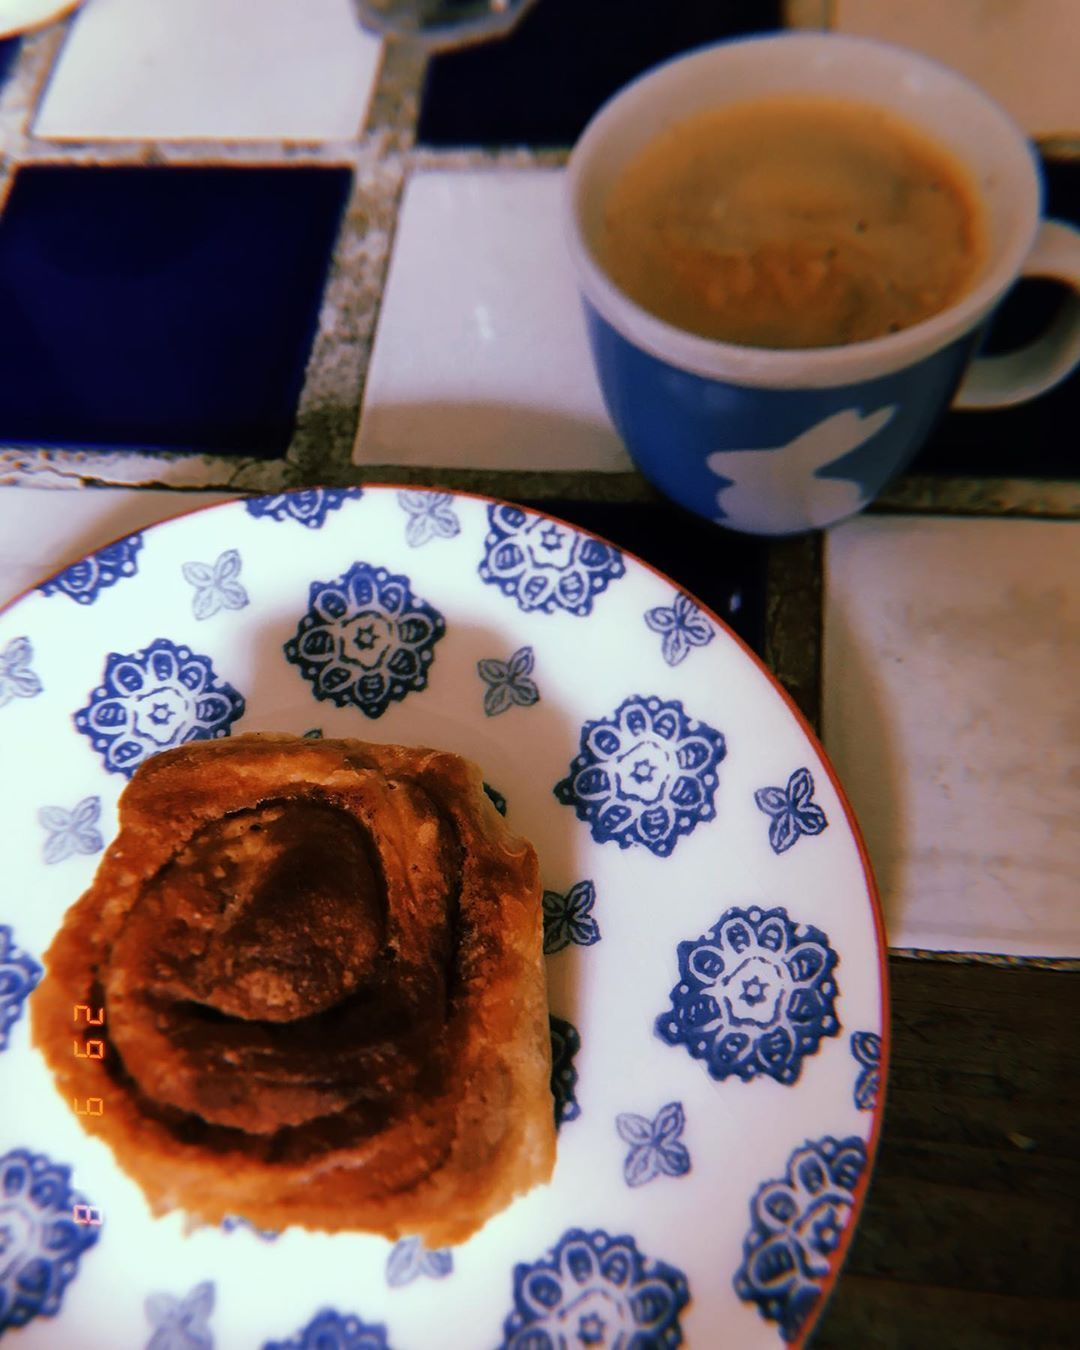 Cinnamon & cardamom buns and coffee make the most indulgent afternoon snack (this followed a giant bacon sarnie so it was a rather indulgent day anyway!) . . . #cinnamonbun #cardamom #baking #homemade #goodfood #instafood #coffee #dessert #cake #afternoontea #foodporn #scotland #lochinver #highlands #holiday #ardmorehouse #cardamombuns Cinnamon & cardamom buns and coffee make the most indulgent afternoon snack (this followed a giant bacon sarnie so it was a rather indulgent day anyway!) . . . #c #cardamombuns